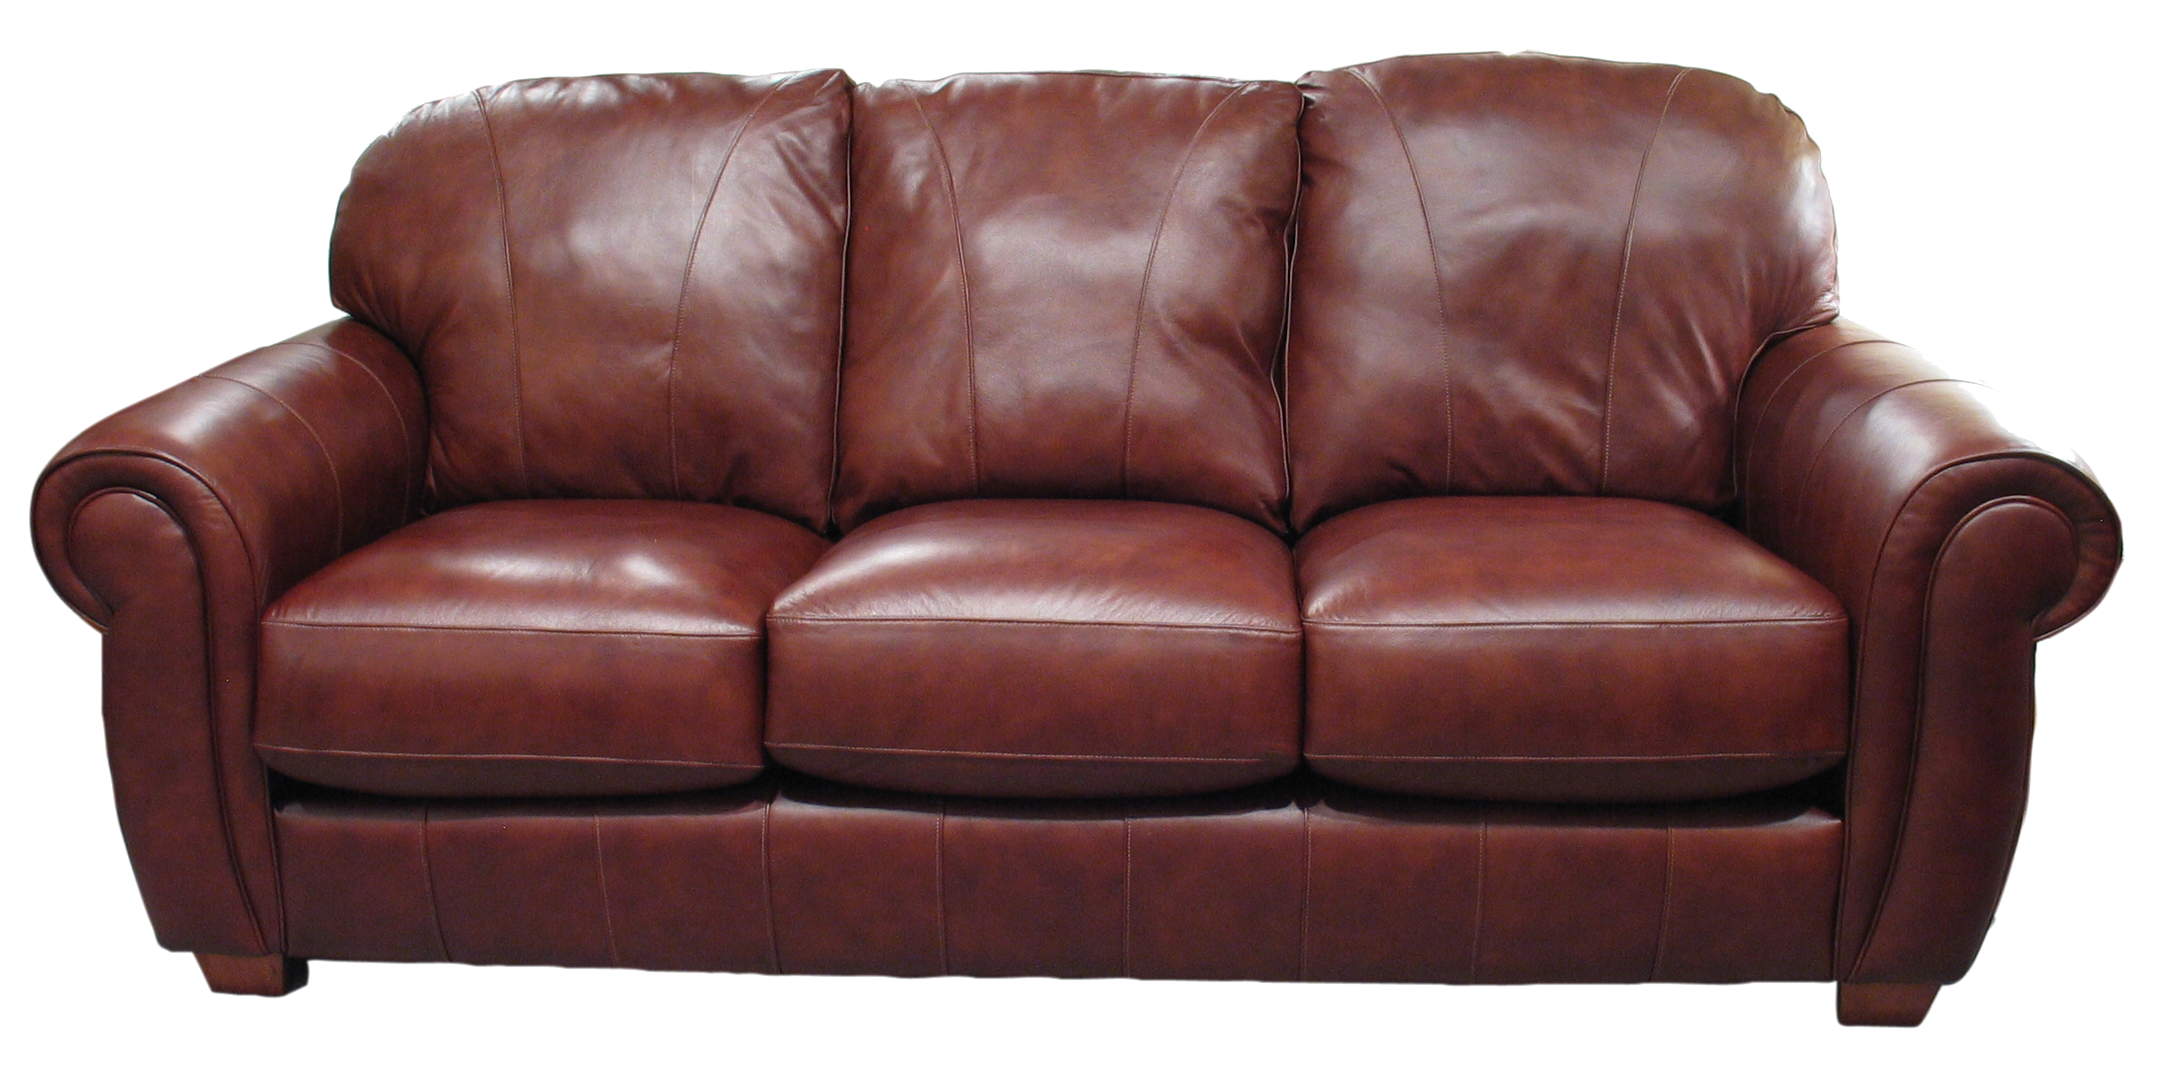 Couch transparent png. Hd images pluspng brown